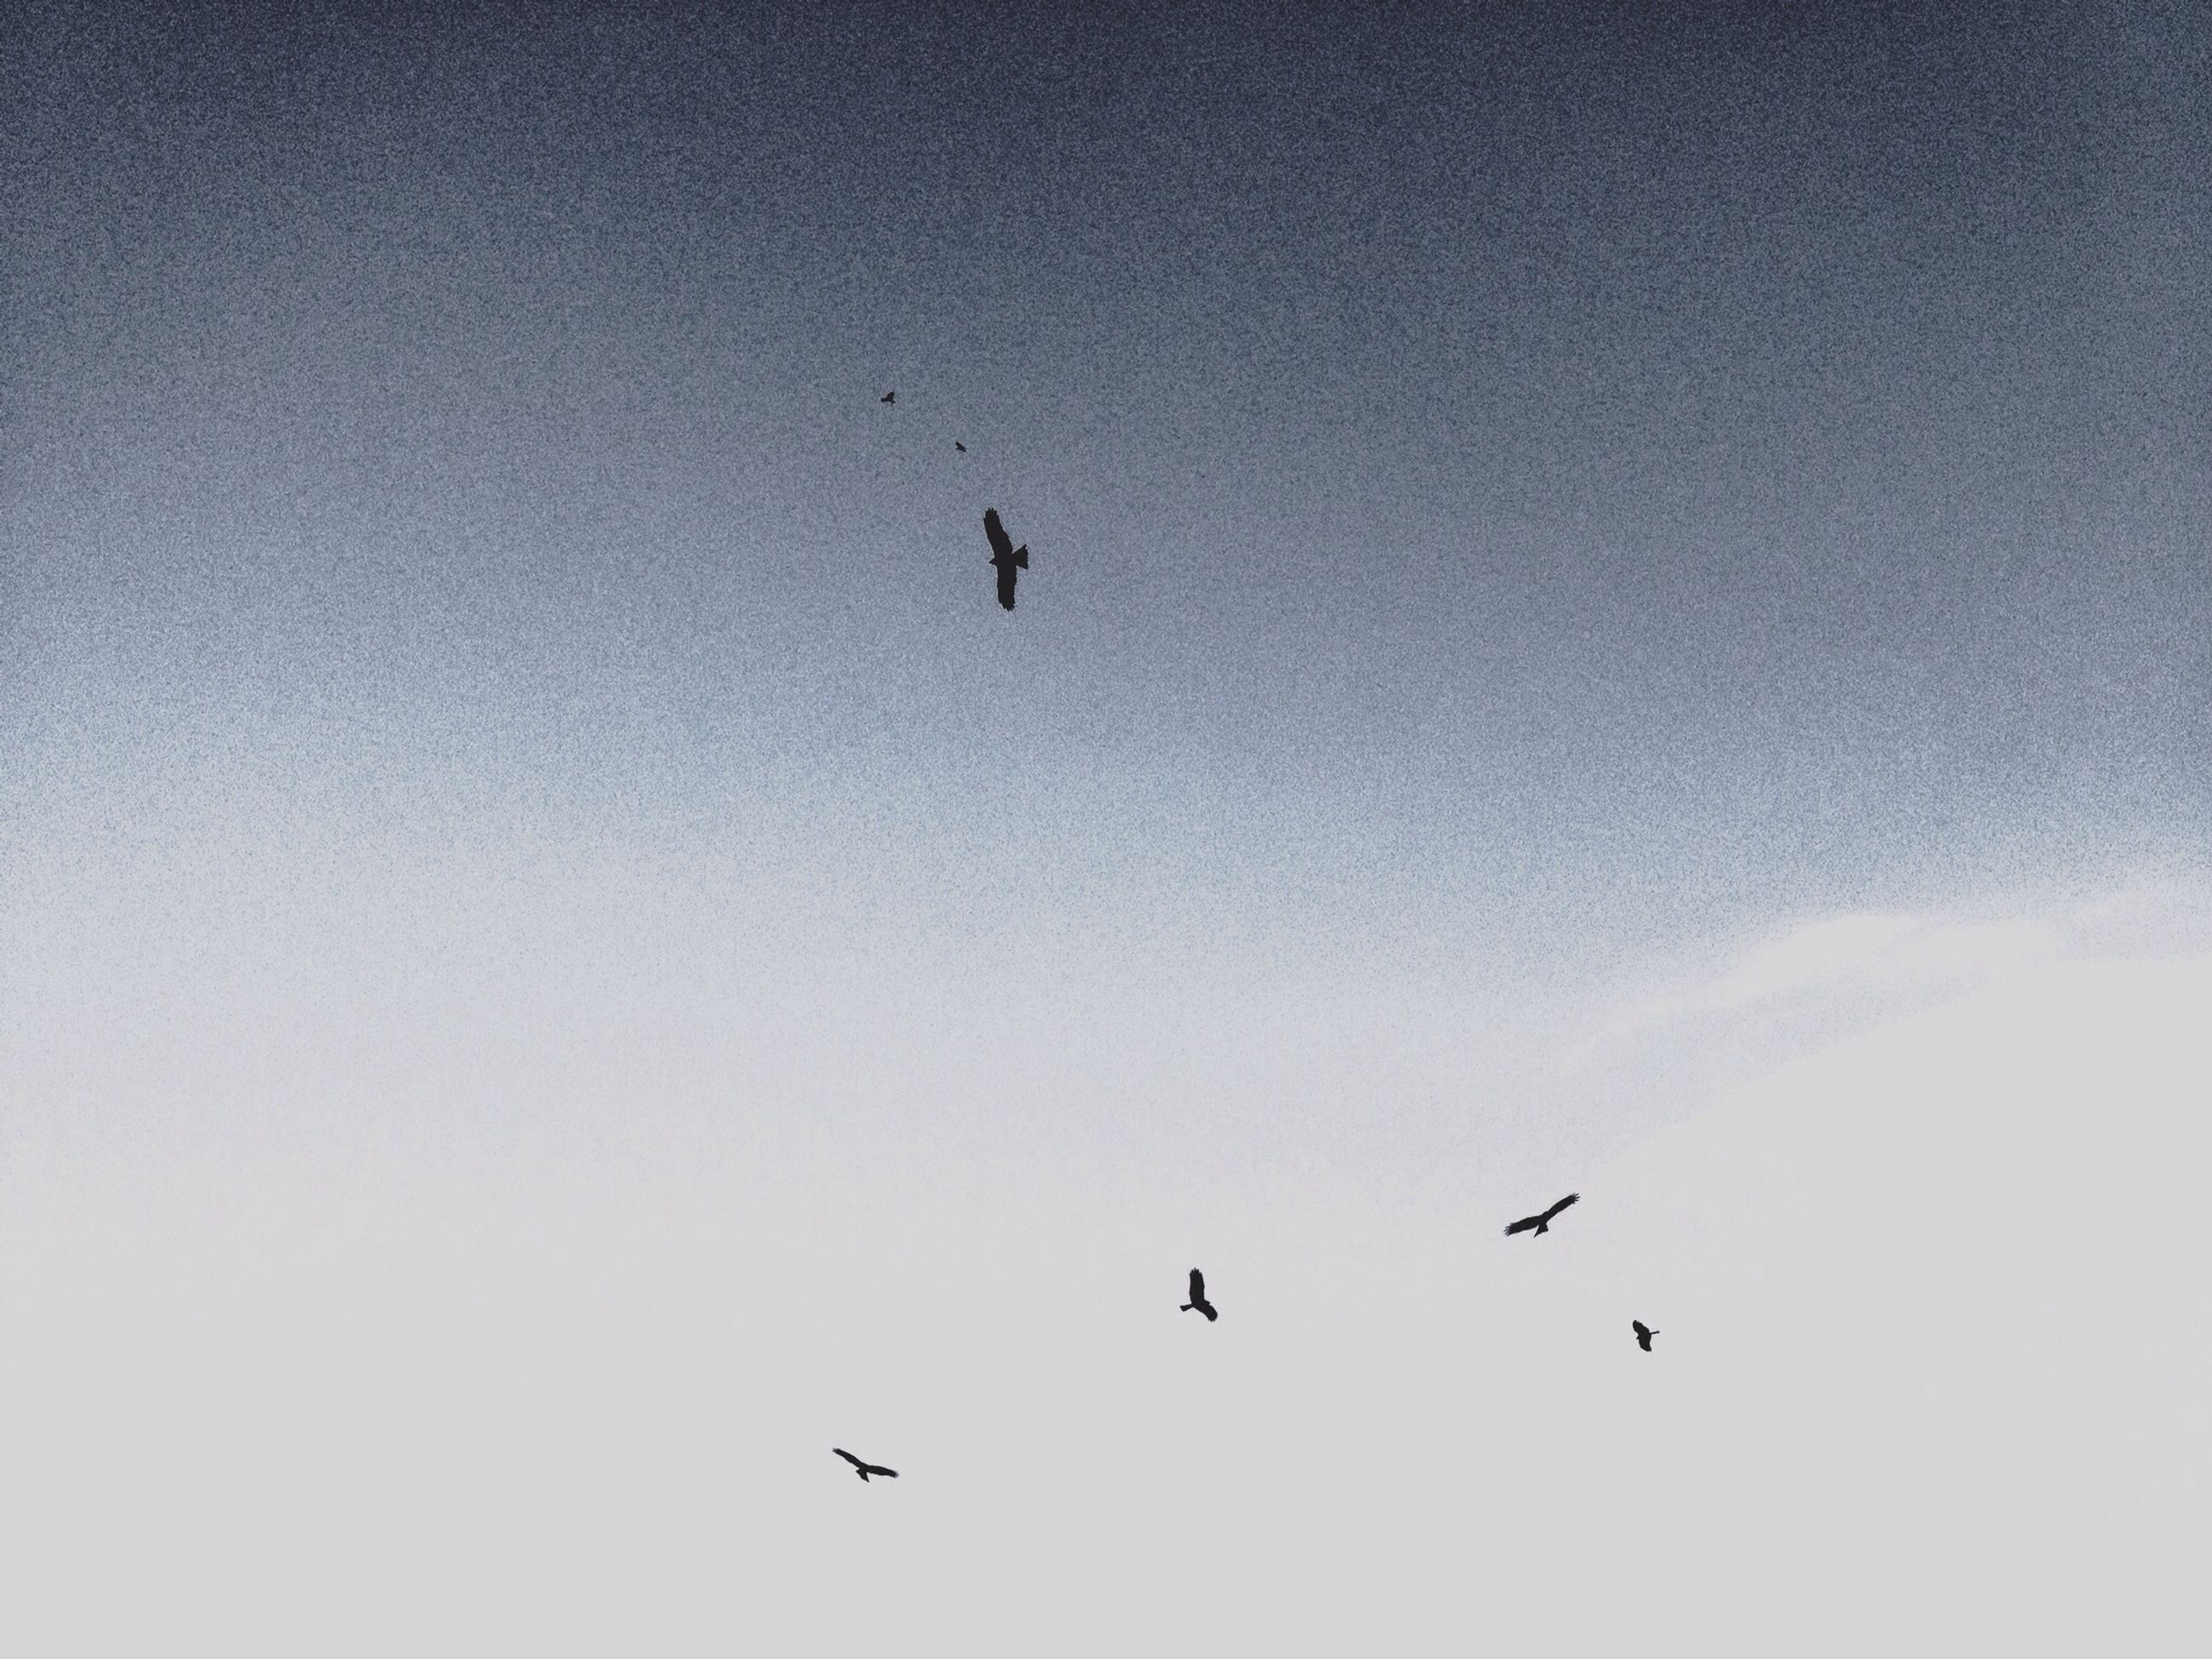 bird, low angle view, flying, animal themes, animals in the wild, wildlife, silhouette, mid-air, sky, spread wings, clear sky, blue, one animal, copy space, nature, beauty in nature, outdoors, no people, flock of birds